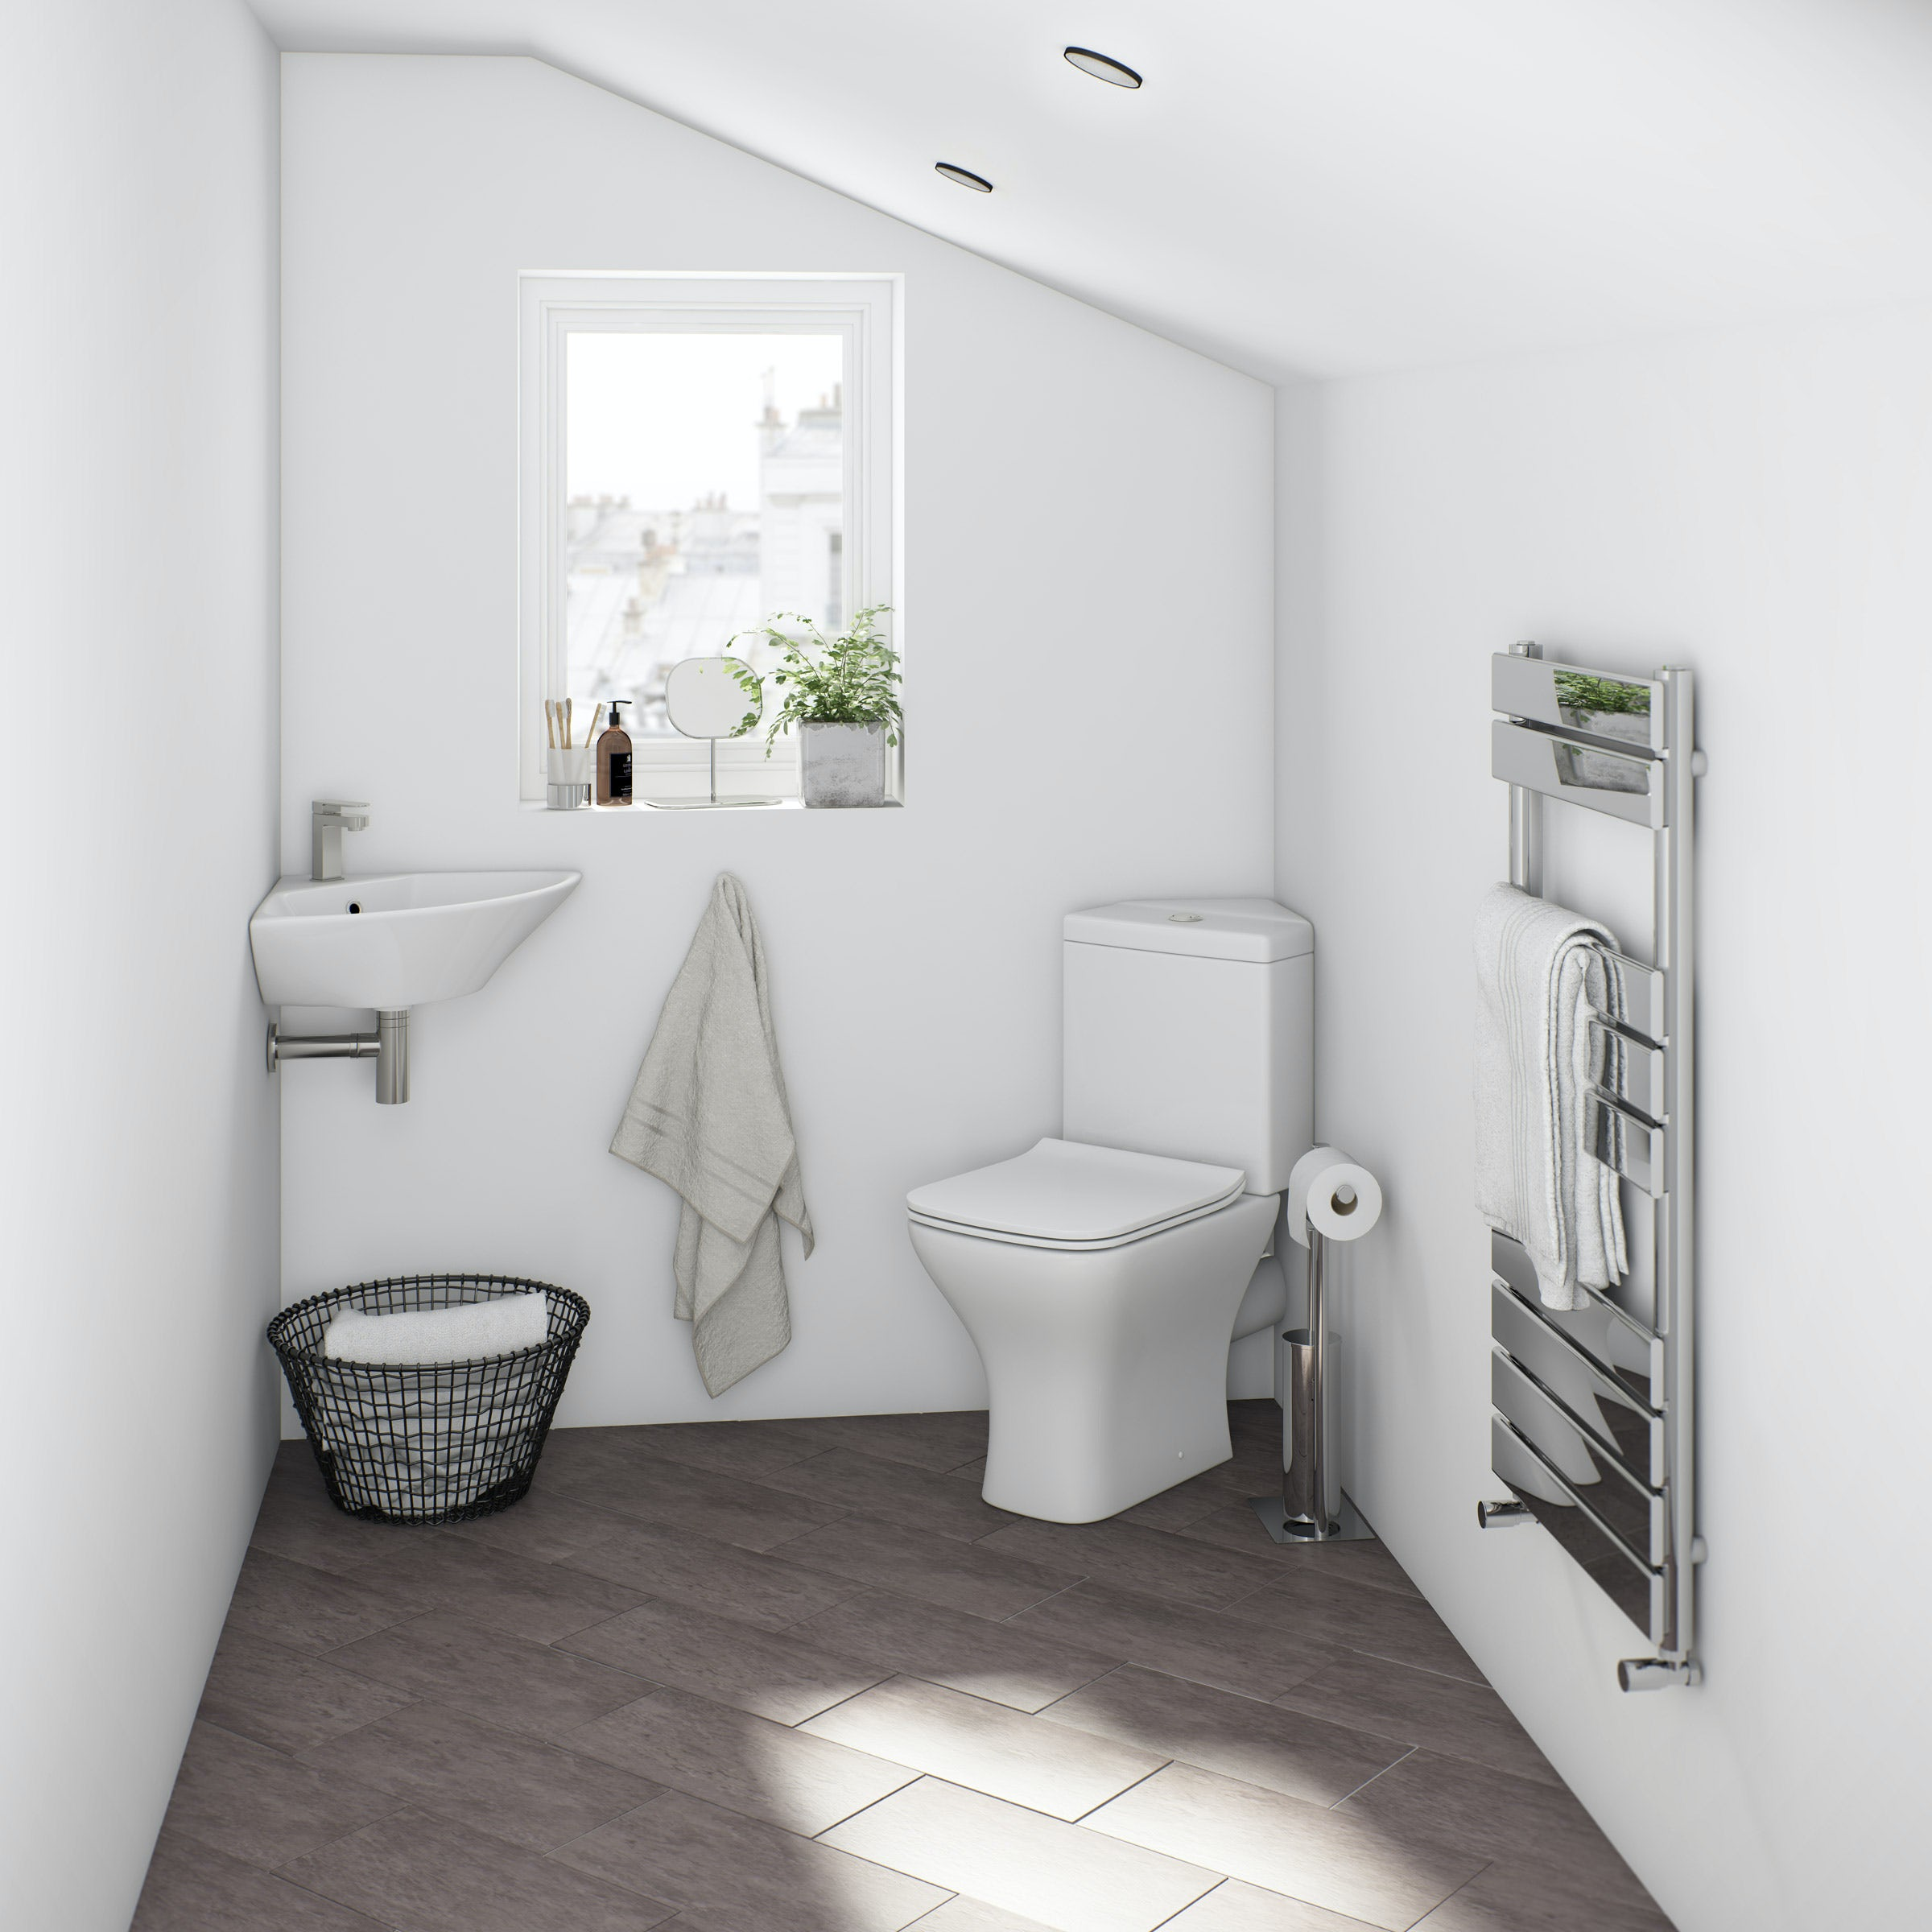 Orchard Derwent square compact corner bathroom suite in loft conversion